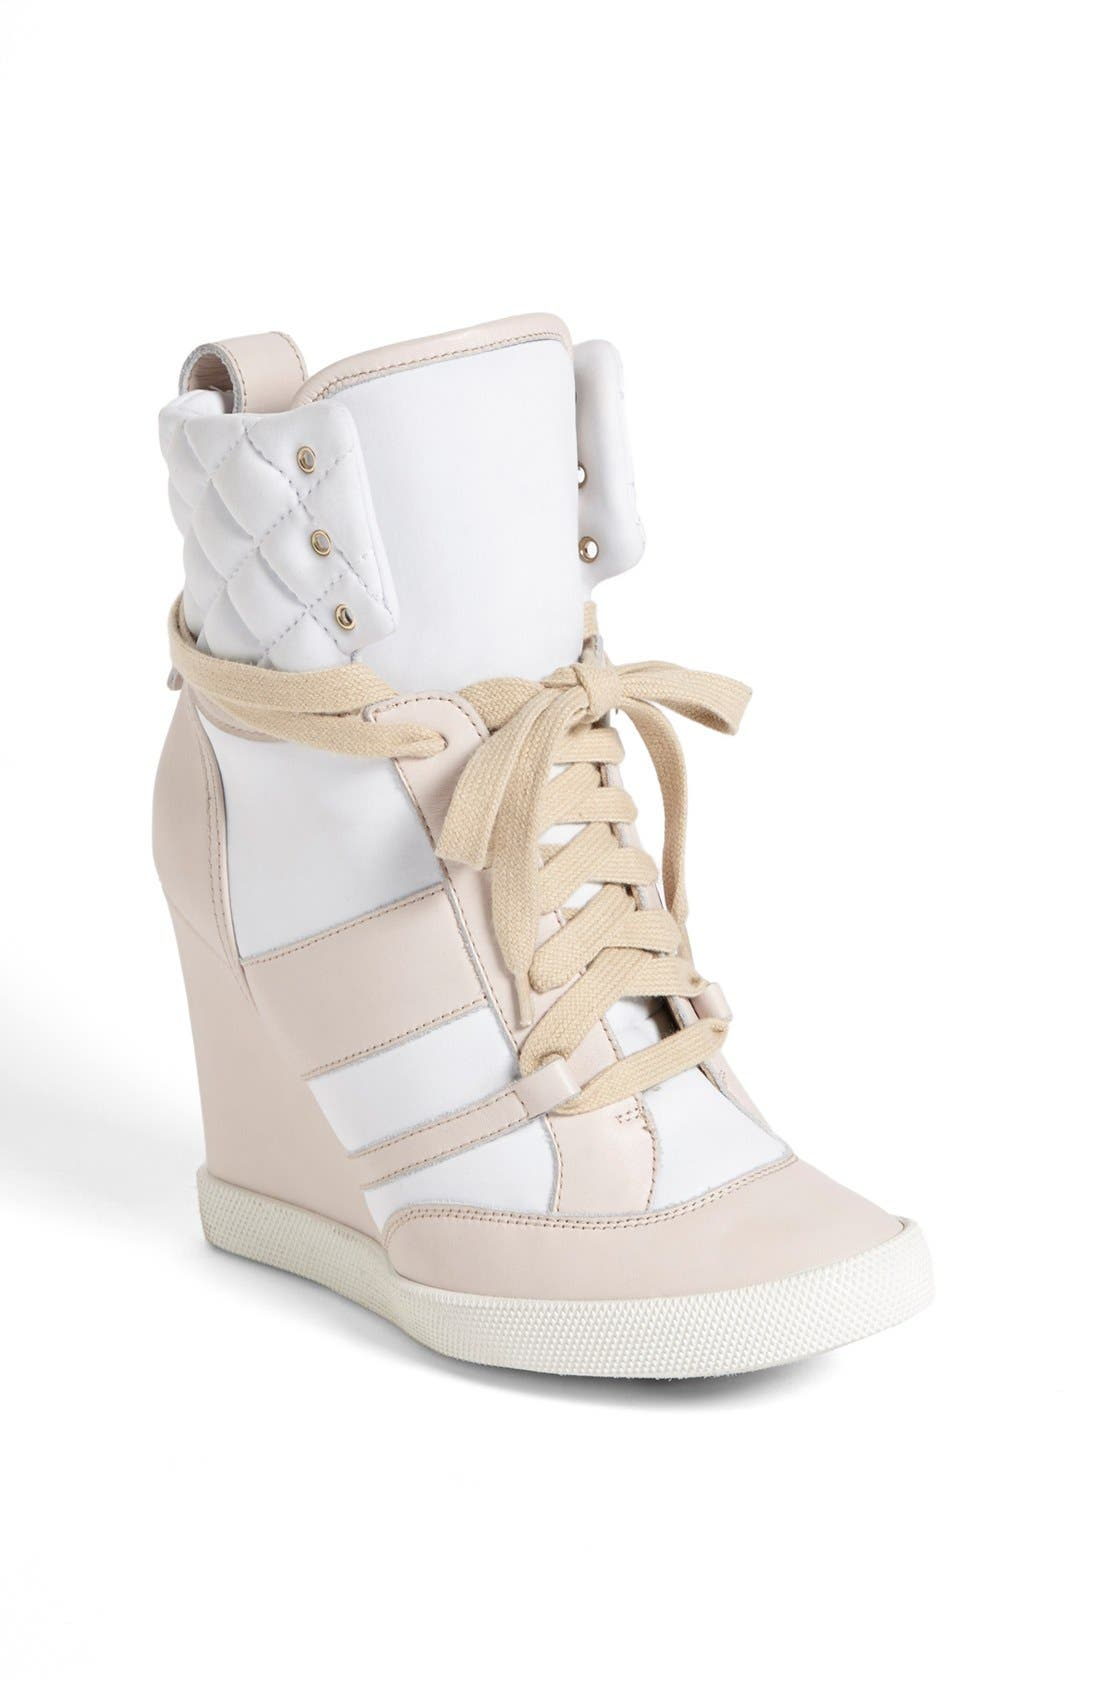 Alternate Image 1 Selected - Chloé 'Kasia' Wedge Sneaker